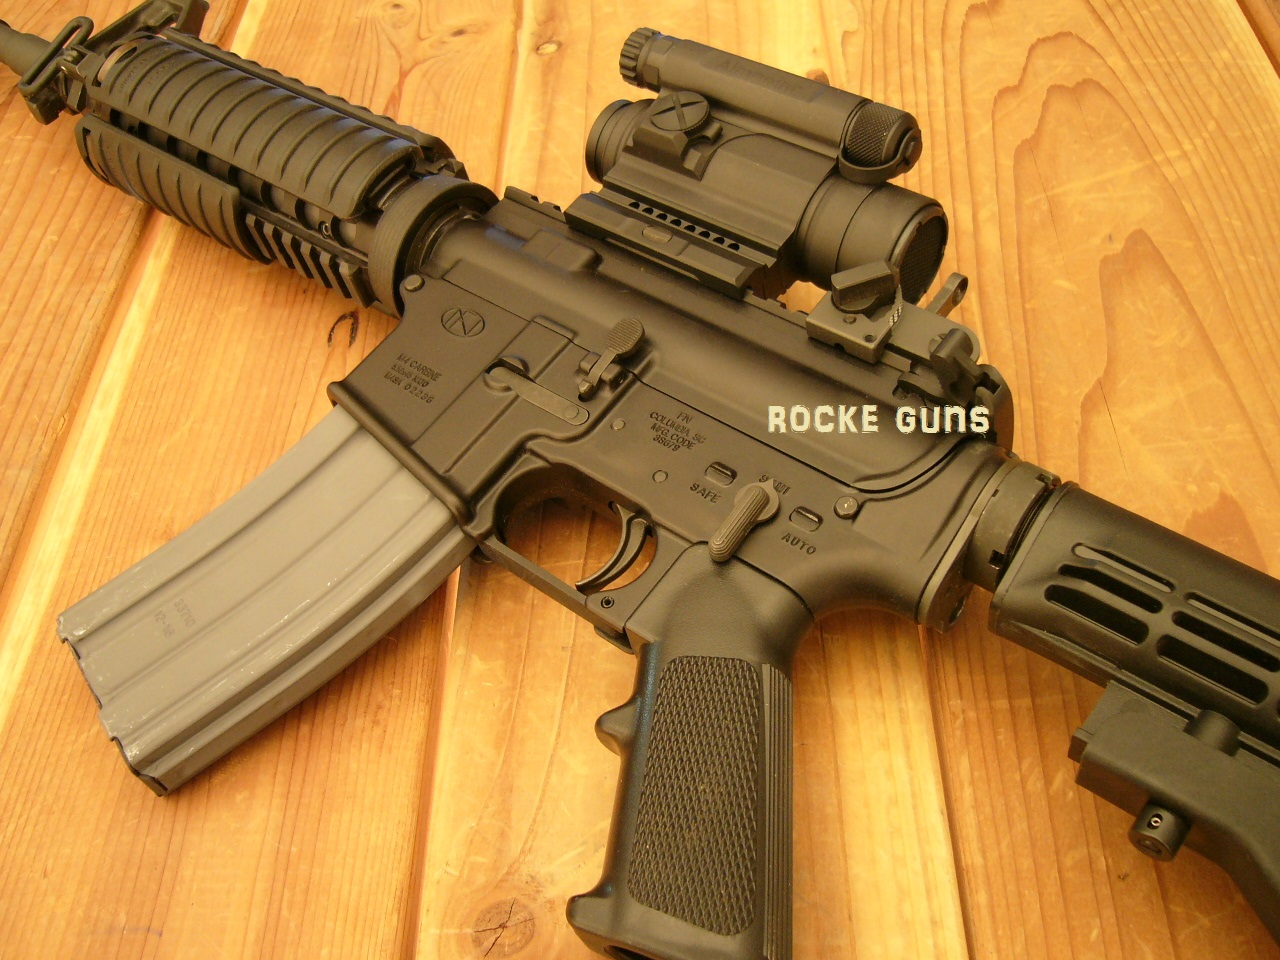 MILITARY ISSUE M4 CARBINE PACKAGE CIVILIAN LEGAL